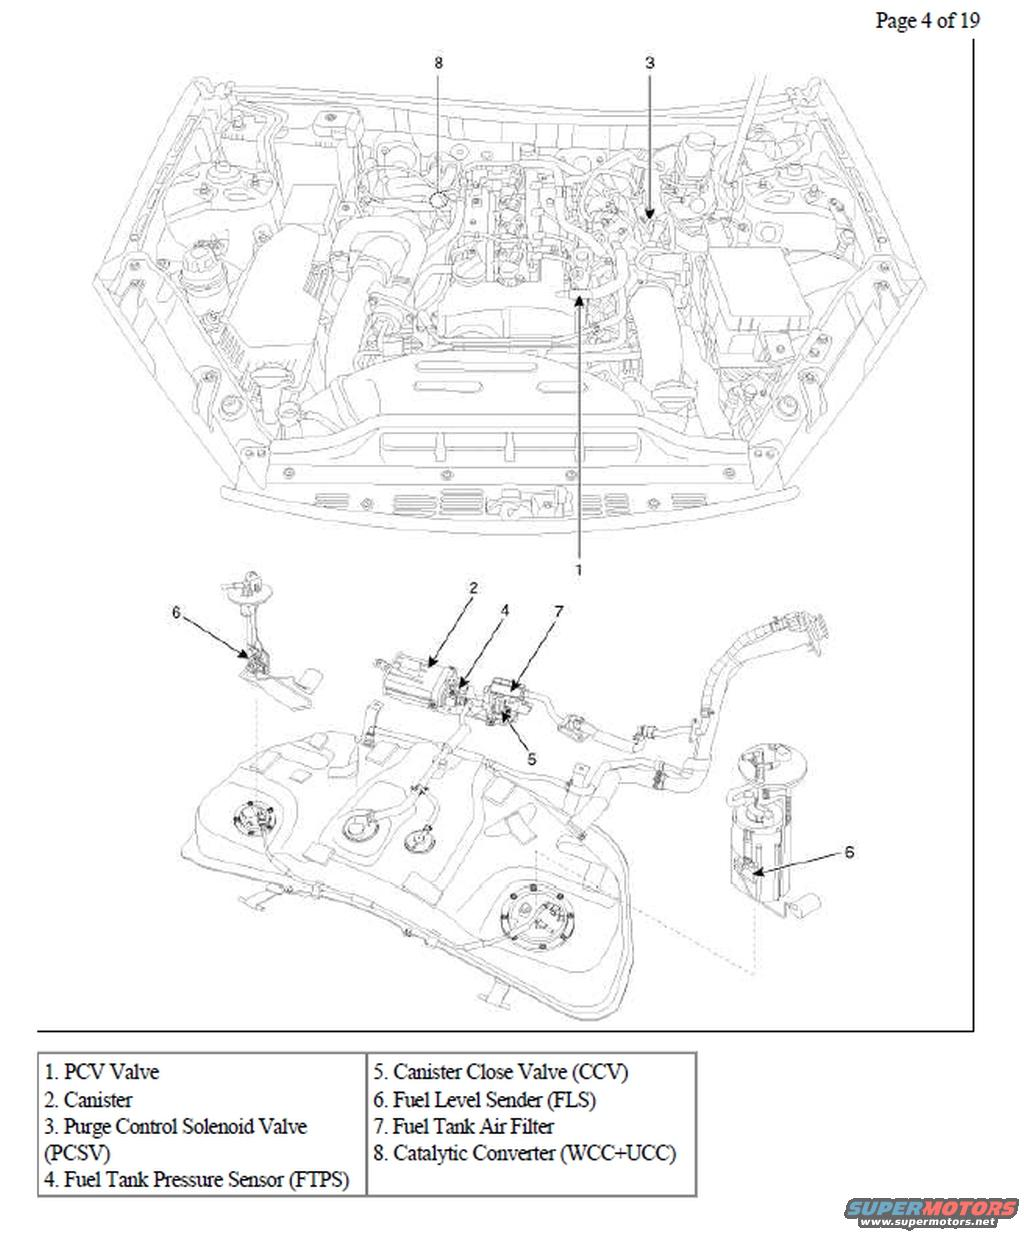 2013 hyundai genesis wiring diagram wiring library Chrysler Pacifica Starter Wiring Diagram 2013 genesis coupe ac diagram electrical work wiring diagram u2022 hyundai headlight adjustment 2013 hyundai